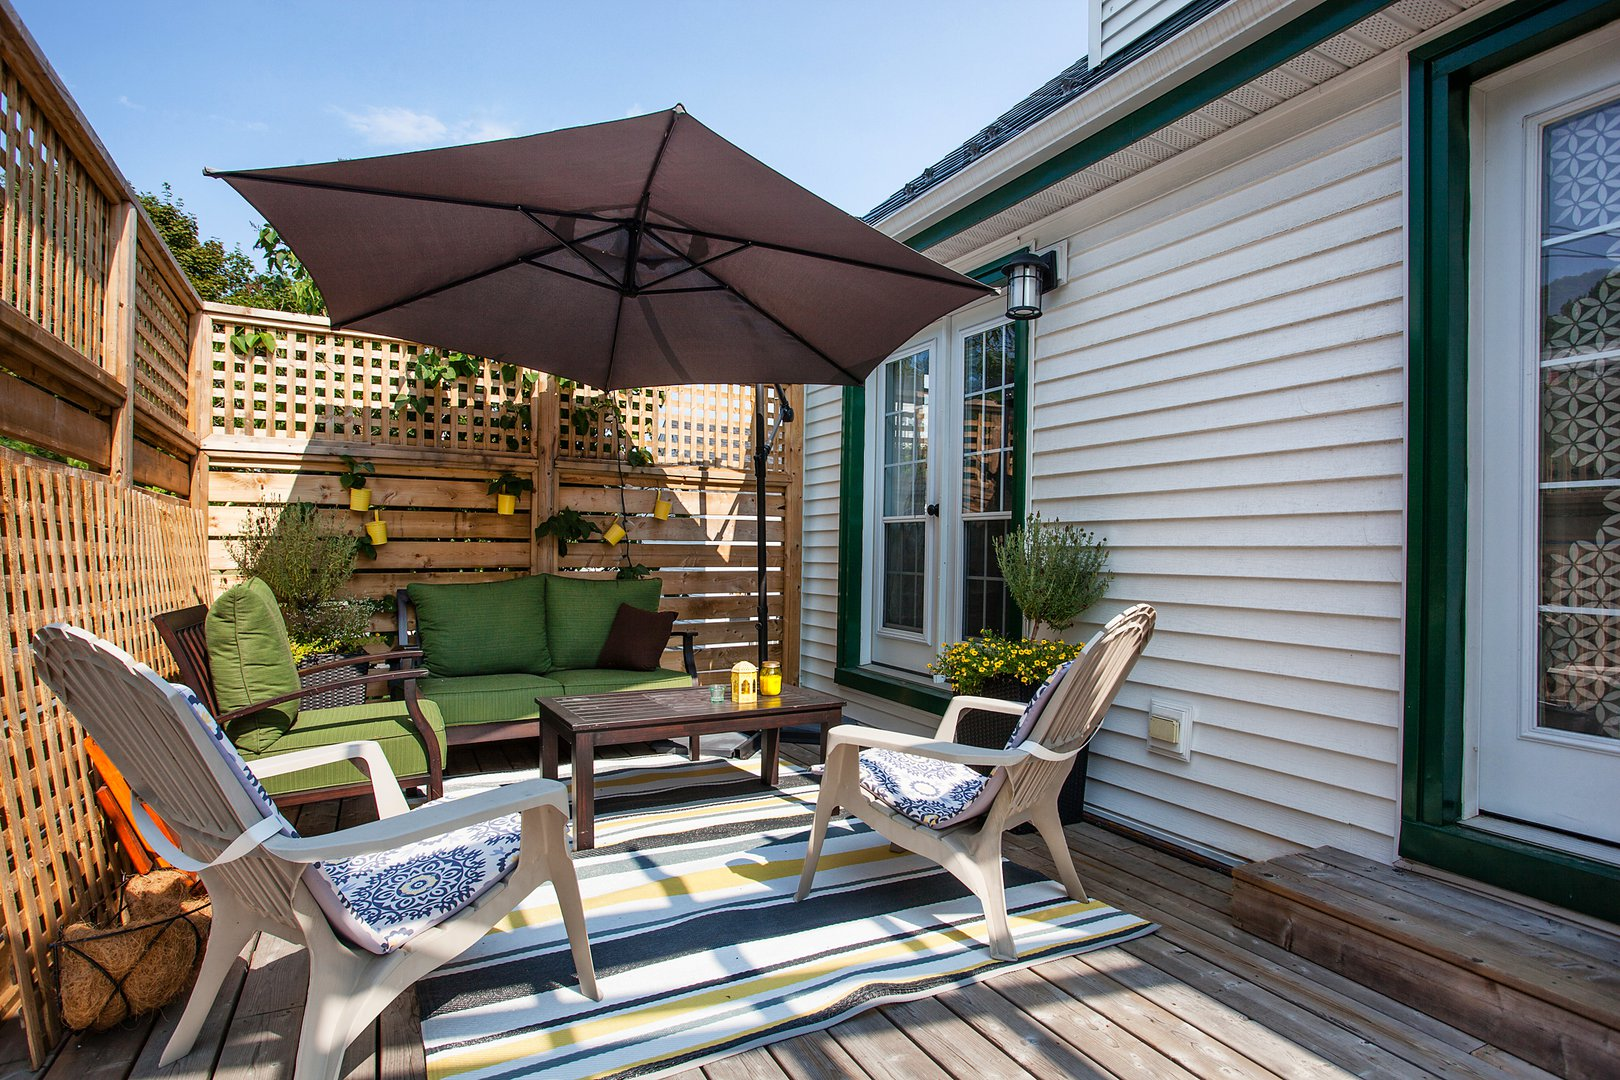 Apartment for rent at 3204 Veith St, Halifax, NS. This is the patio terrace with deck and outdoor living space.